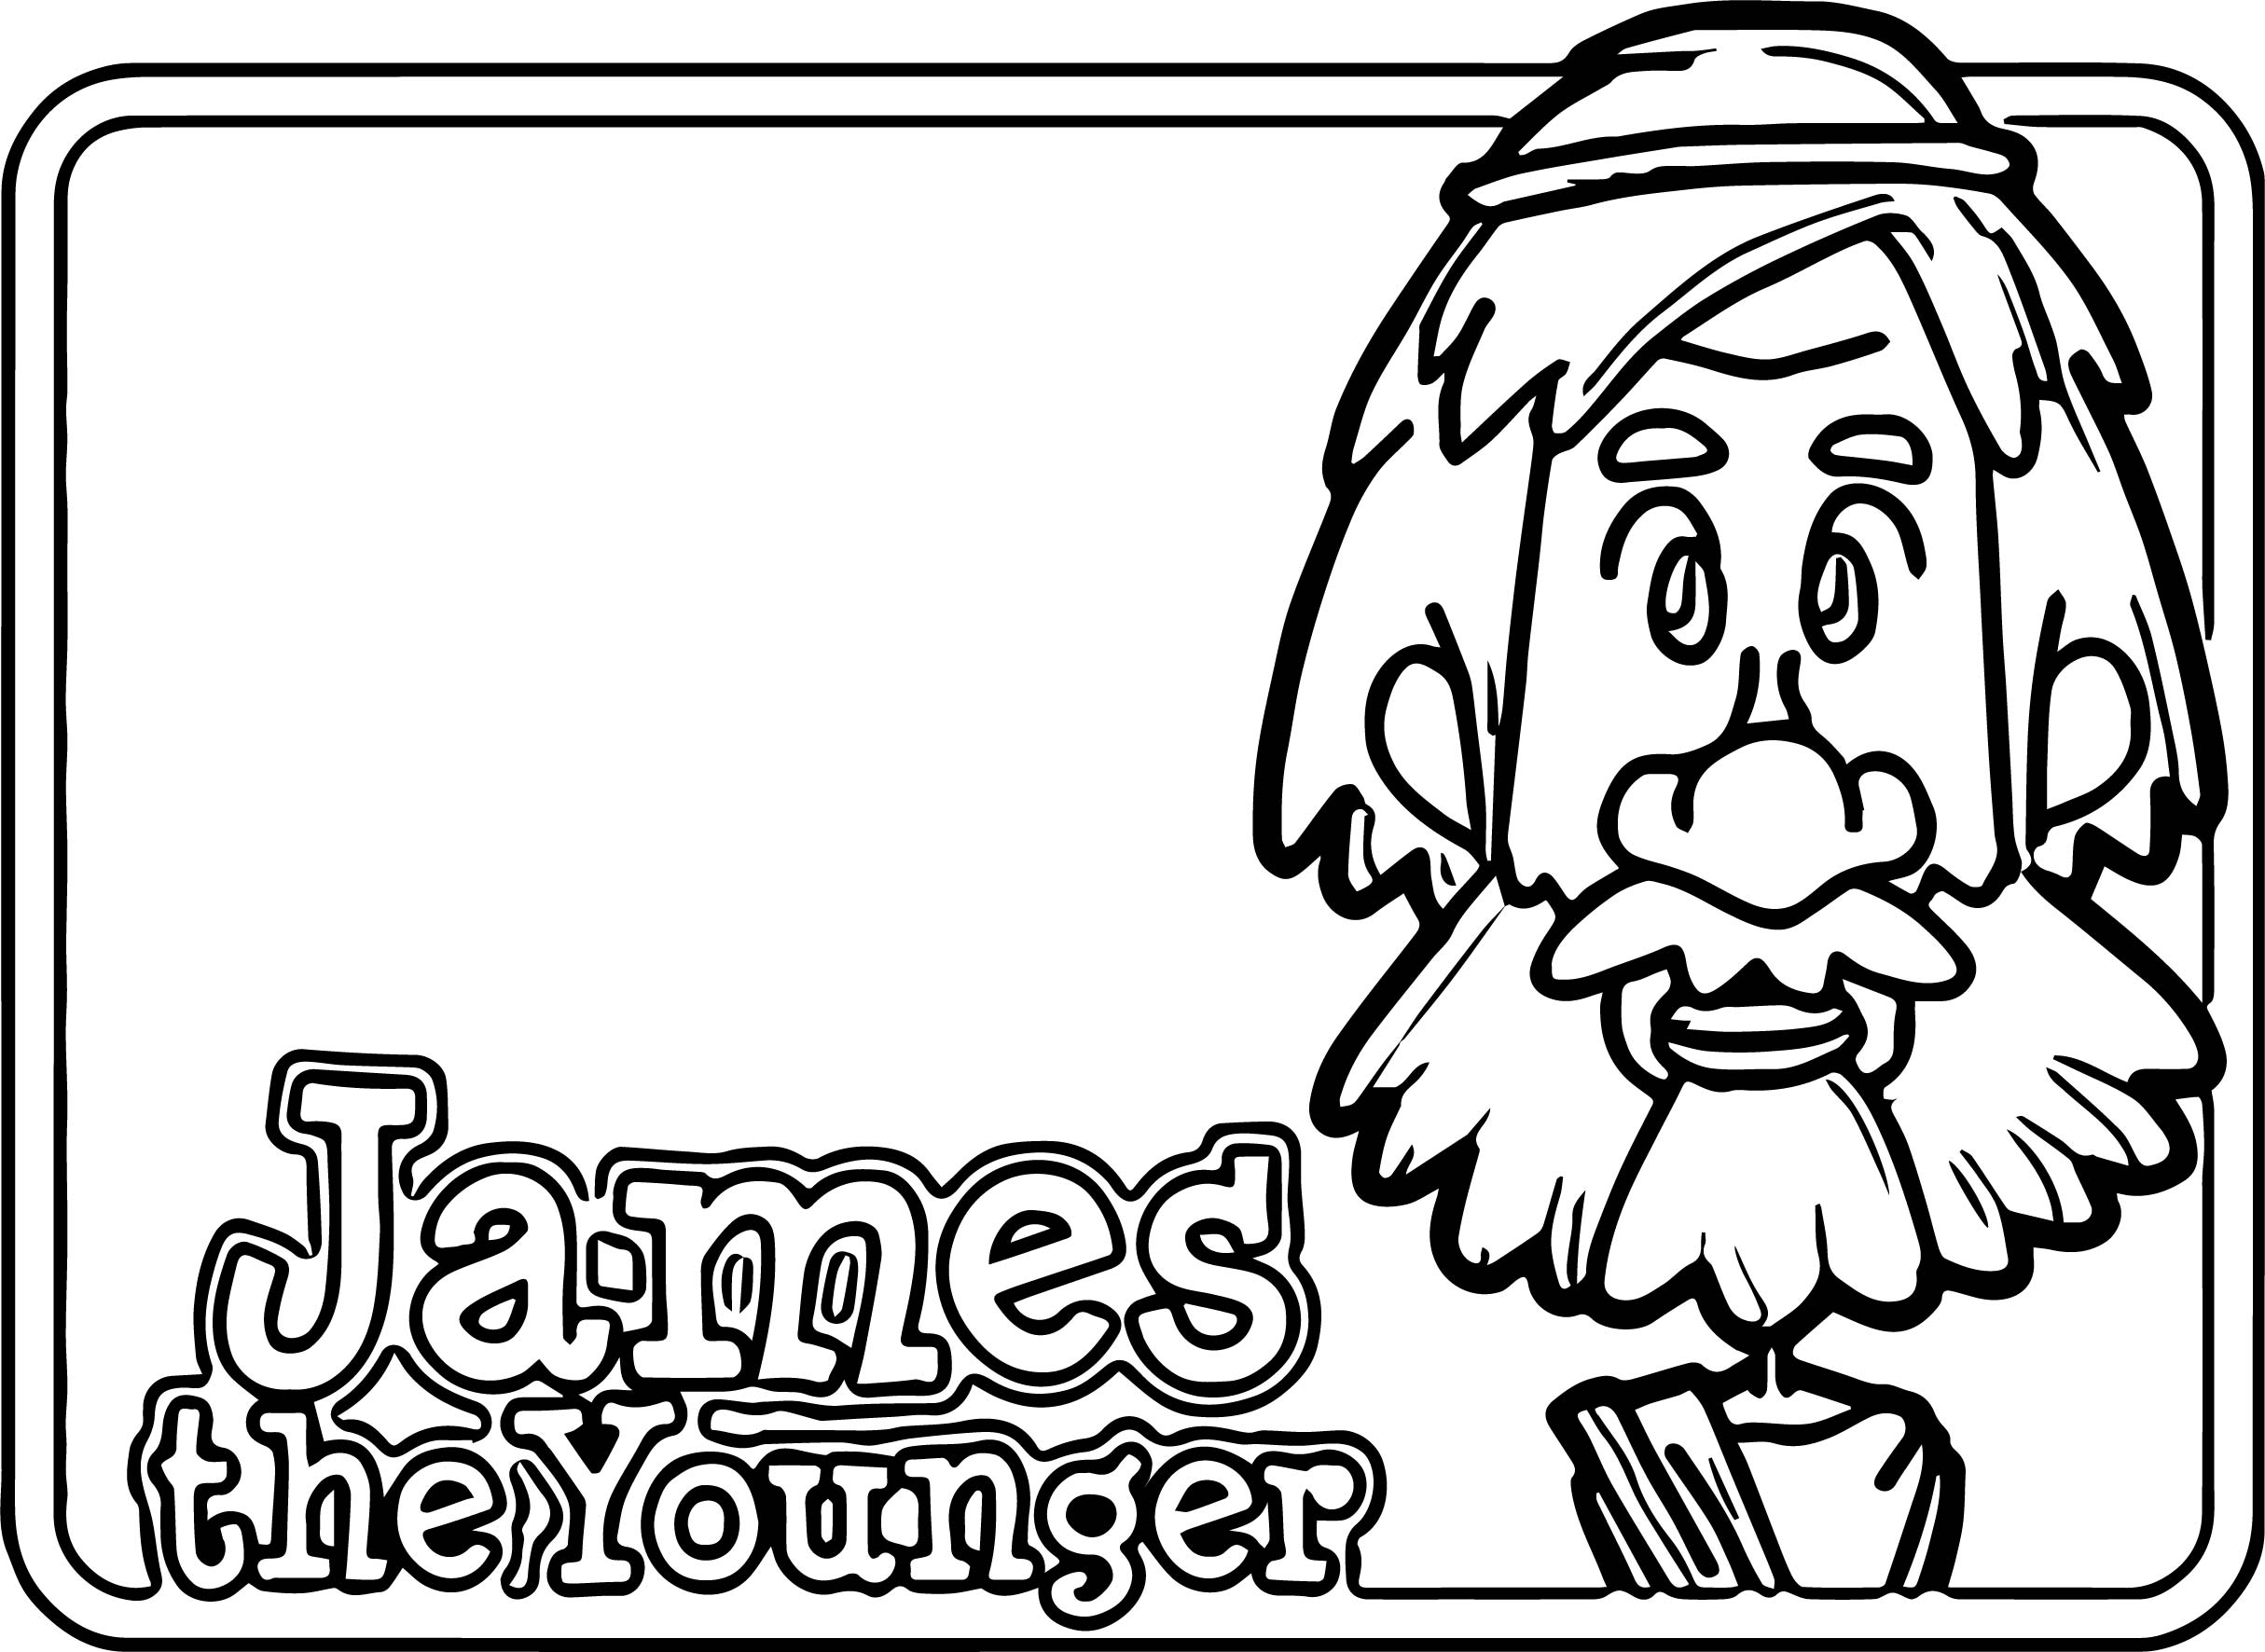 Apostle Paul James The Younger Coloring Page